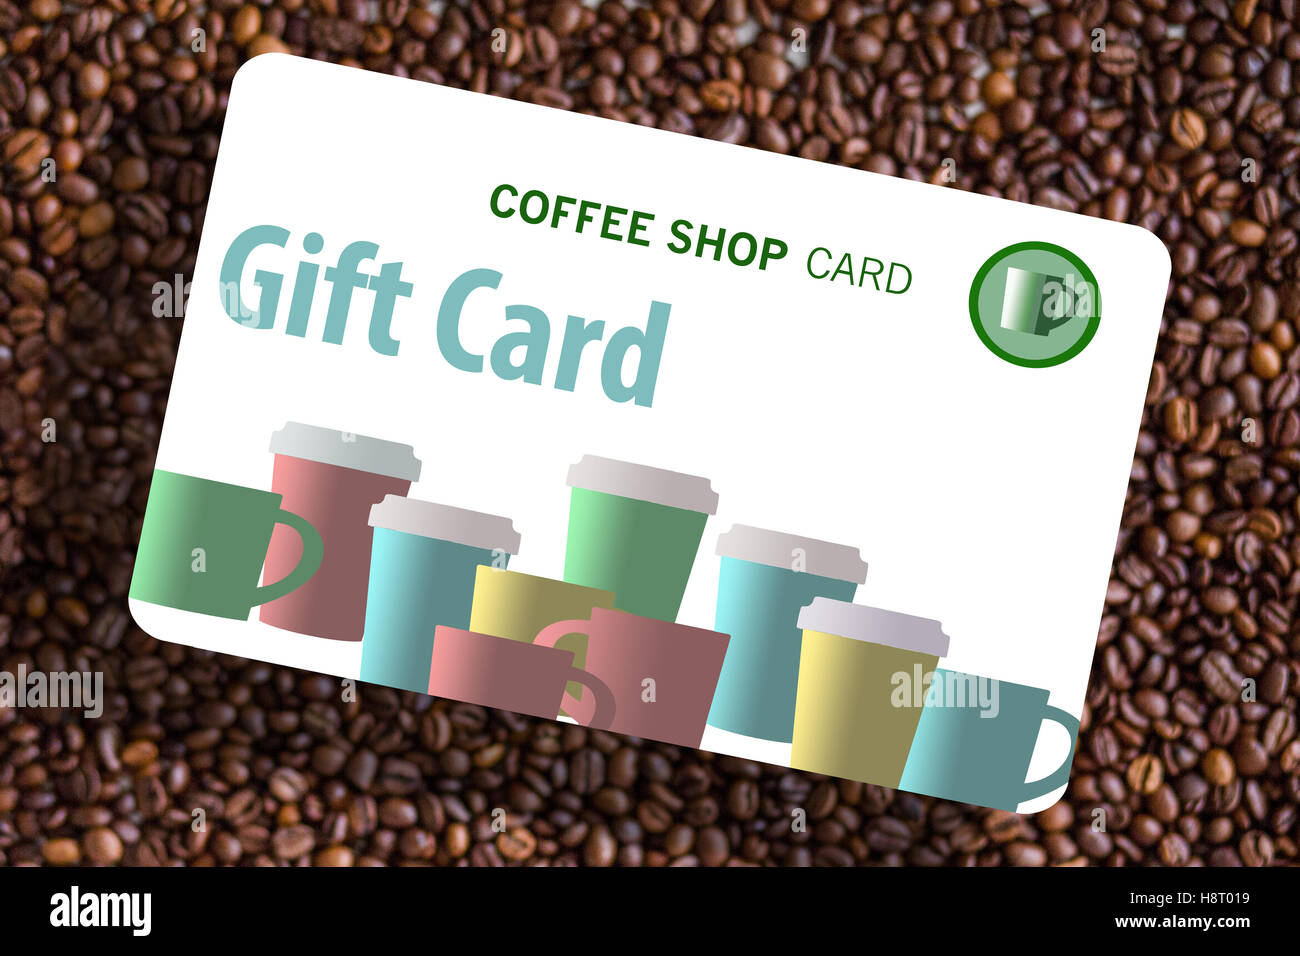 coffee shop gift card generic with a background of coffee beans